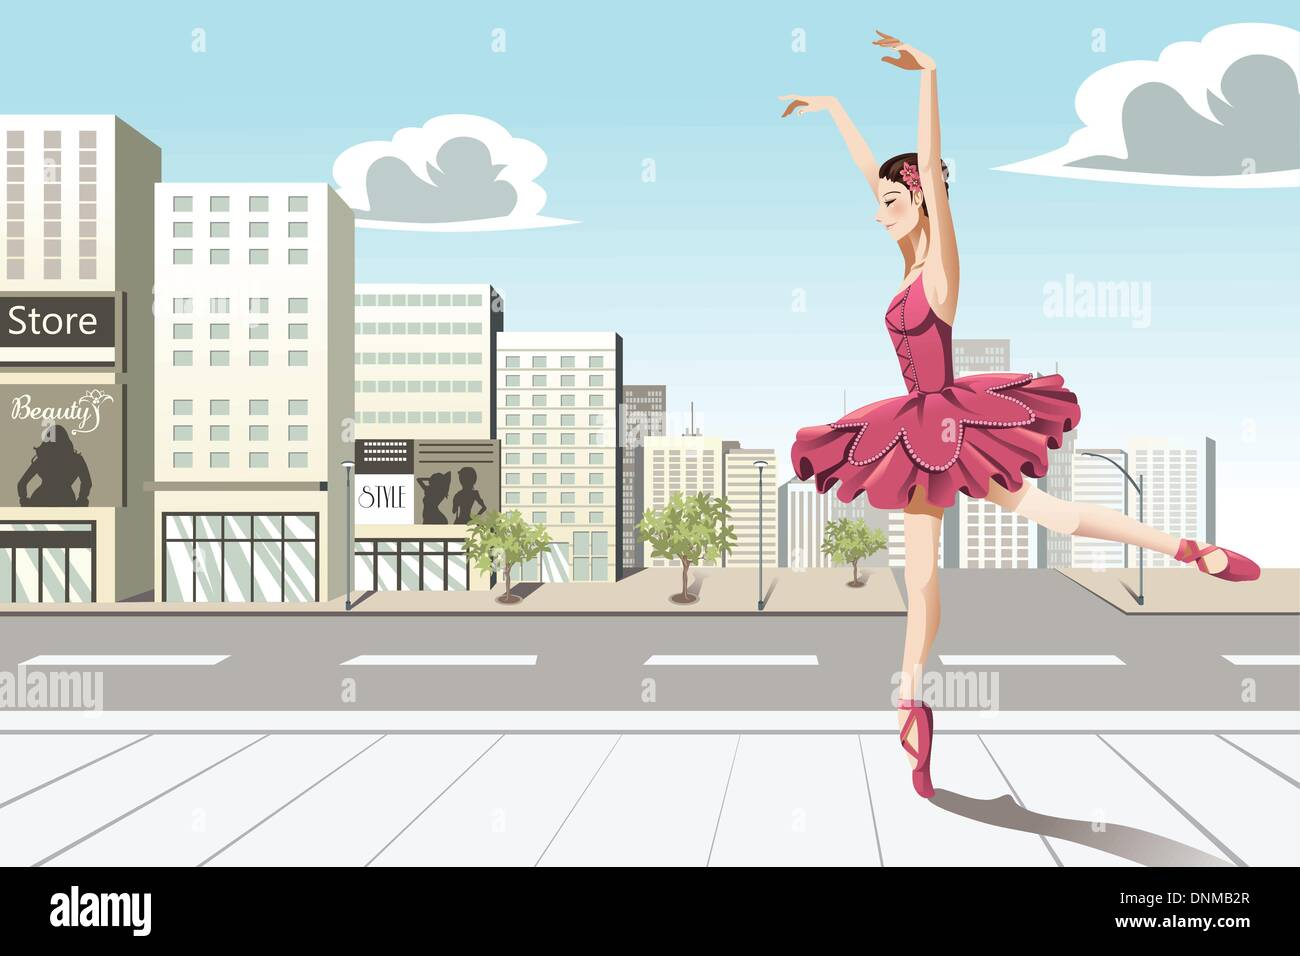 A vector illustration of a ballet dancer dancing in the city - Stock Vector